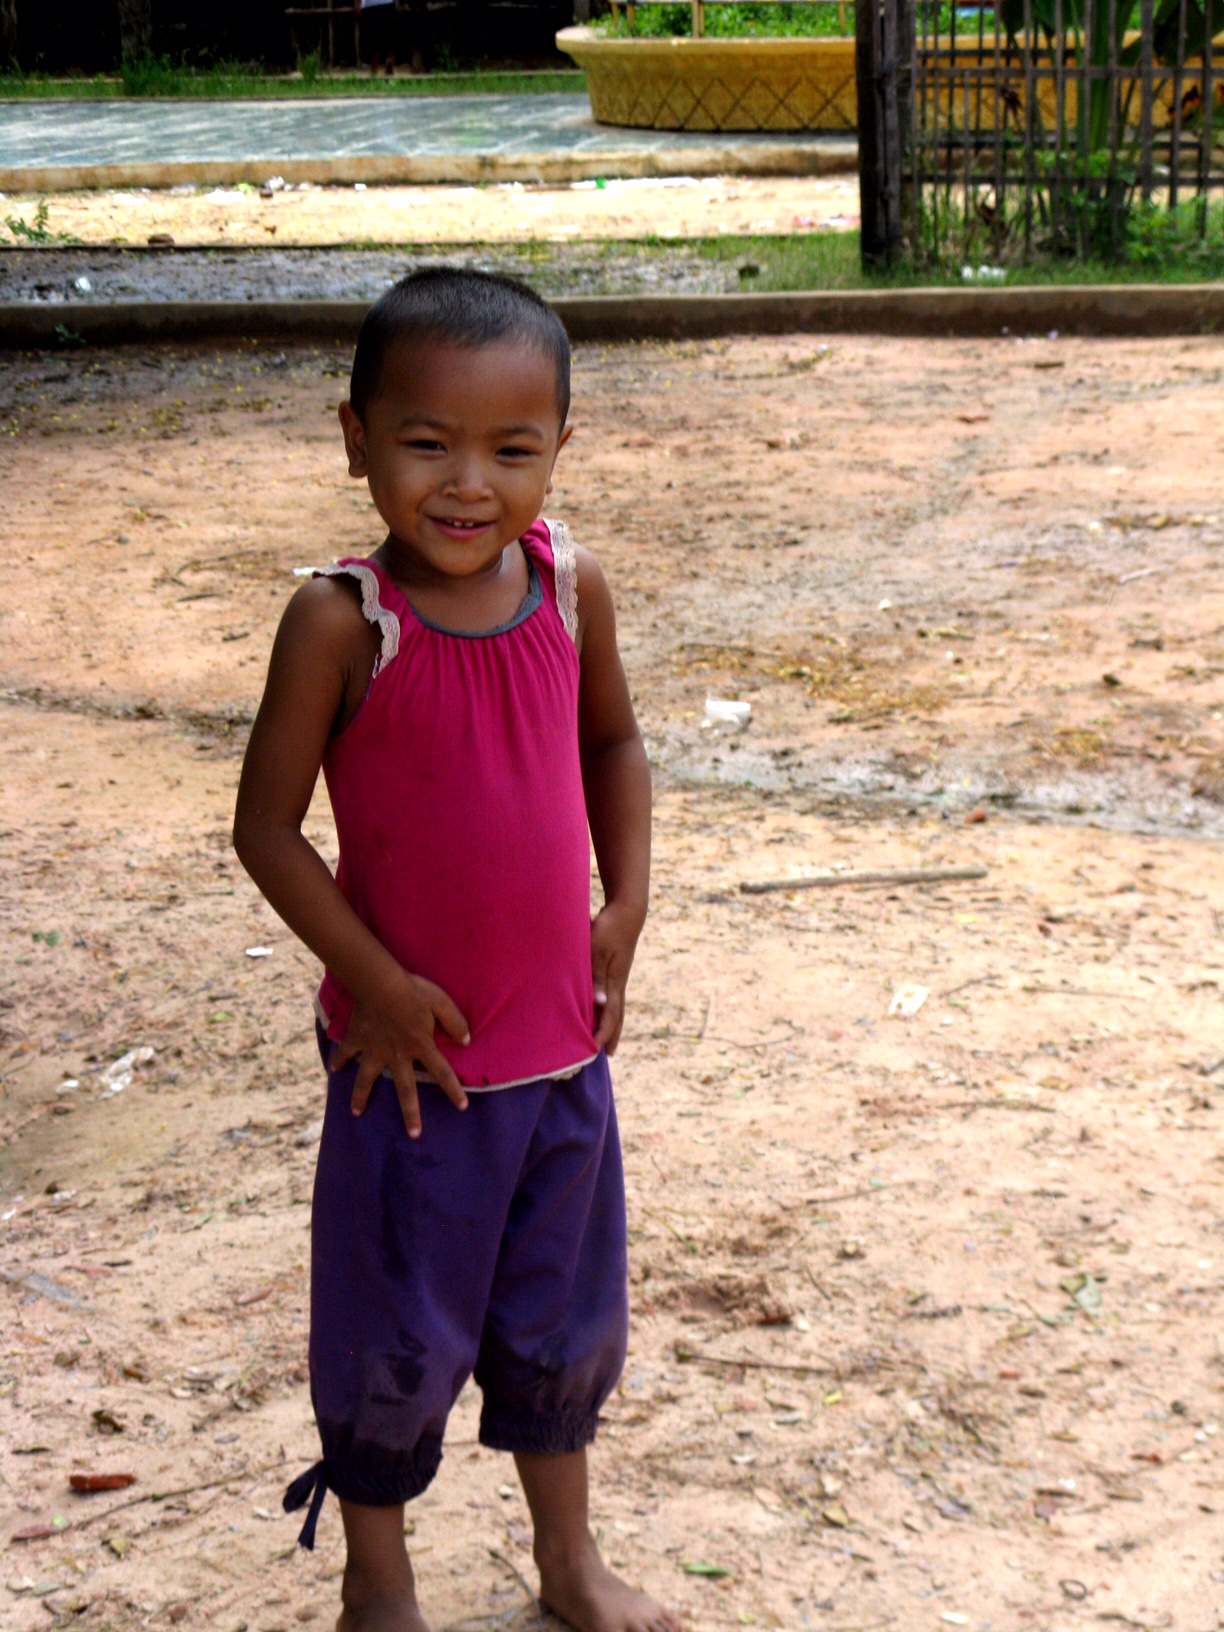 This fiesty little firecracker was our favorite villager. She was so full of life and followed us all over the island